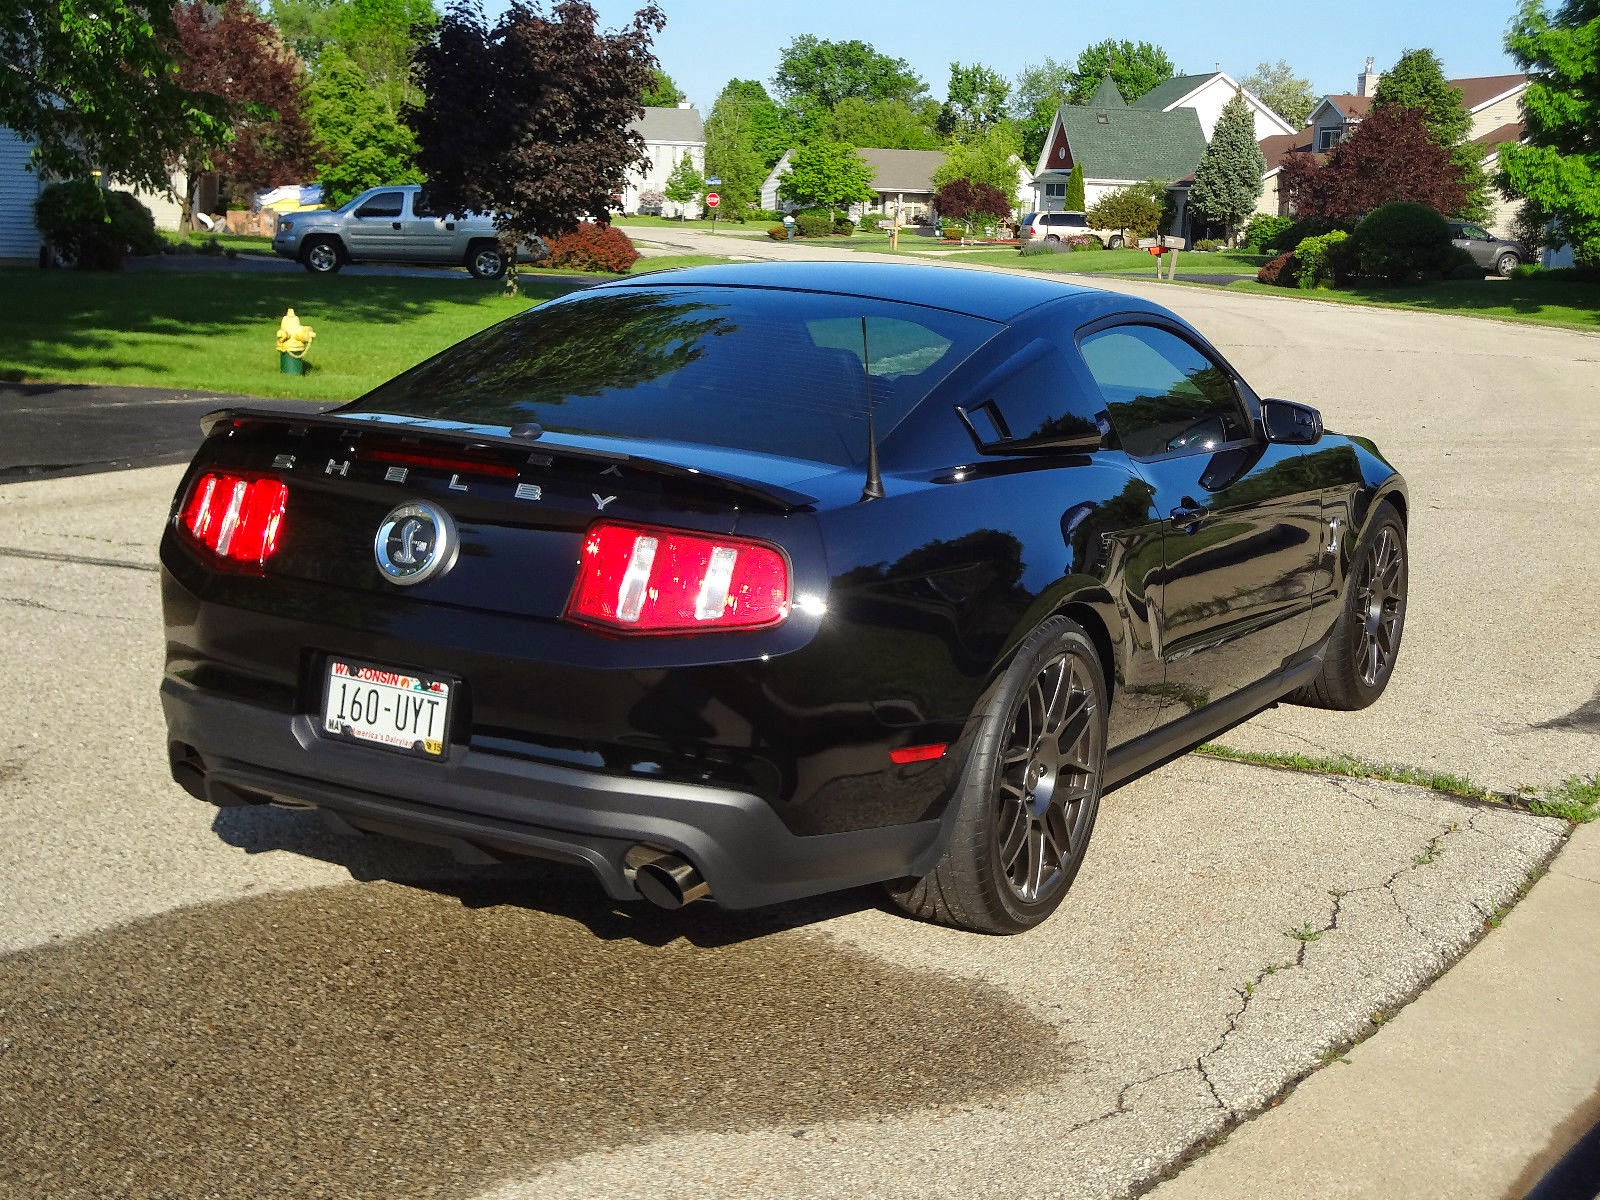 2012 ford mustang shelby gt500 svt for sale american muscle cars. Black Bedroom Furniture Sets. Home Design Ideas